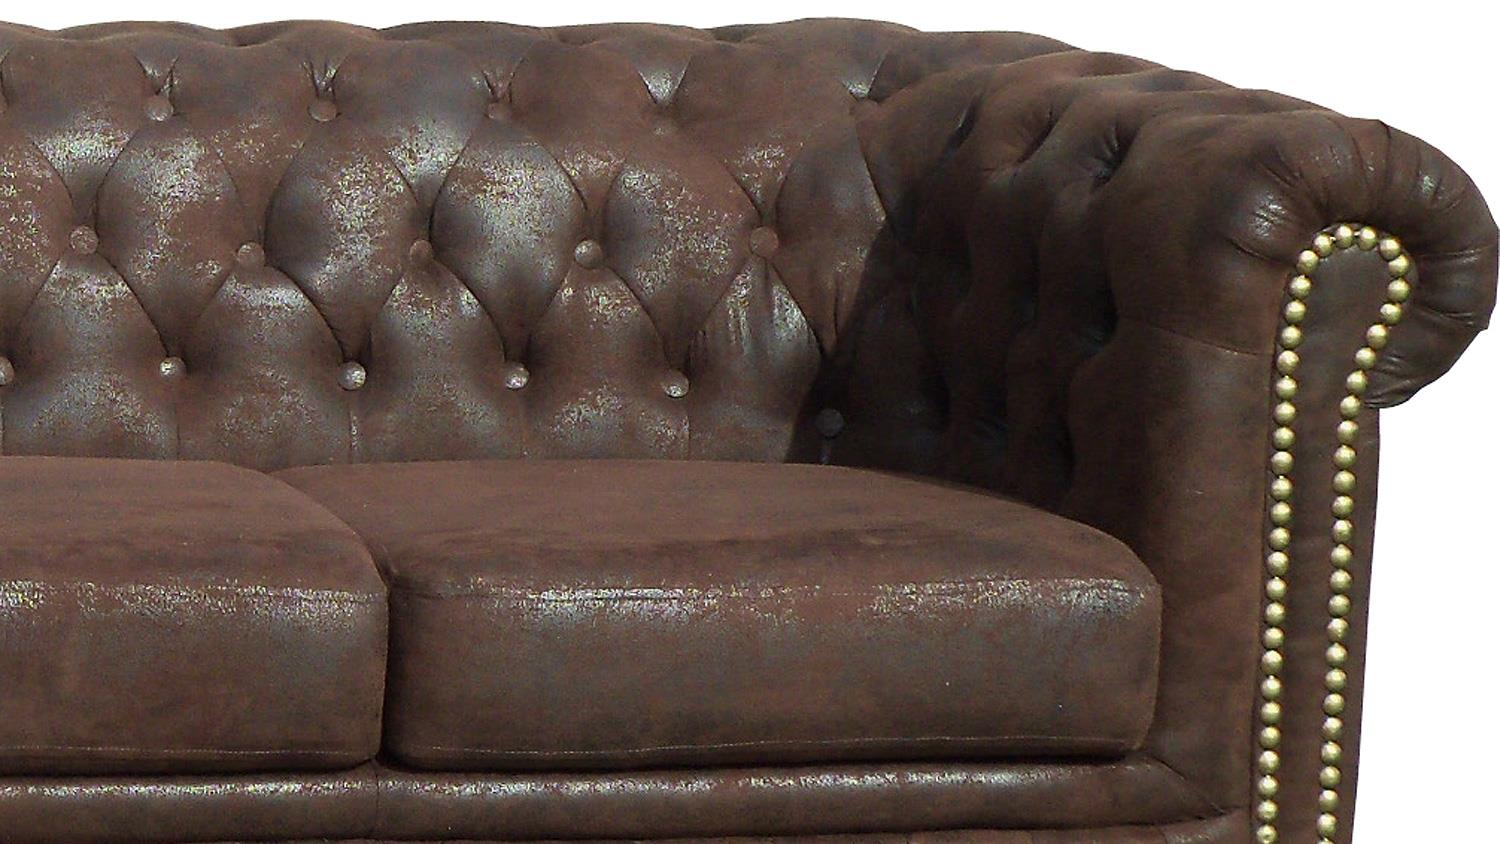 Sheffield Sessel Garnitur 3 2 1 Sheffield Sessel 2 And 3 Sitzer Sofa